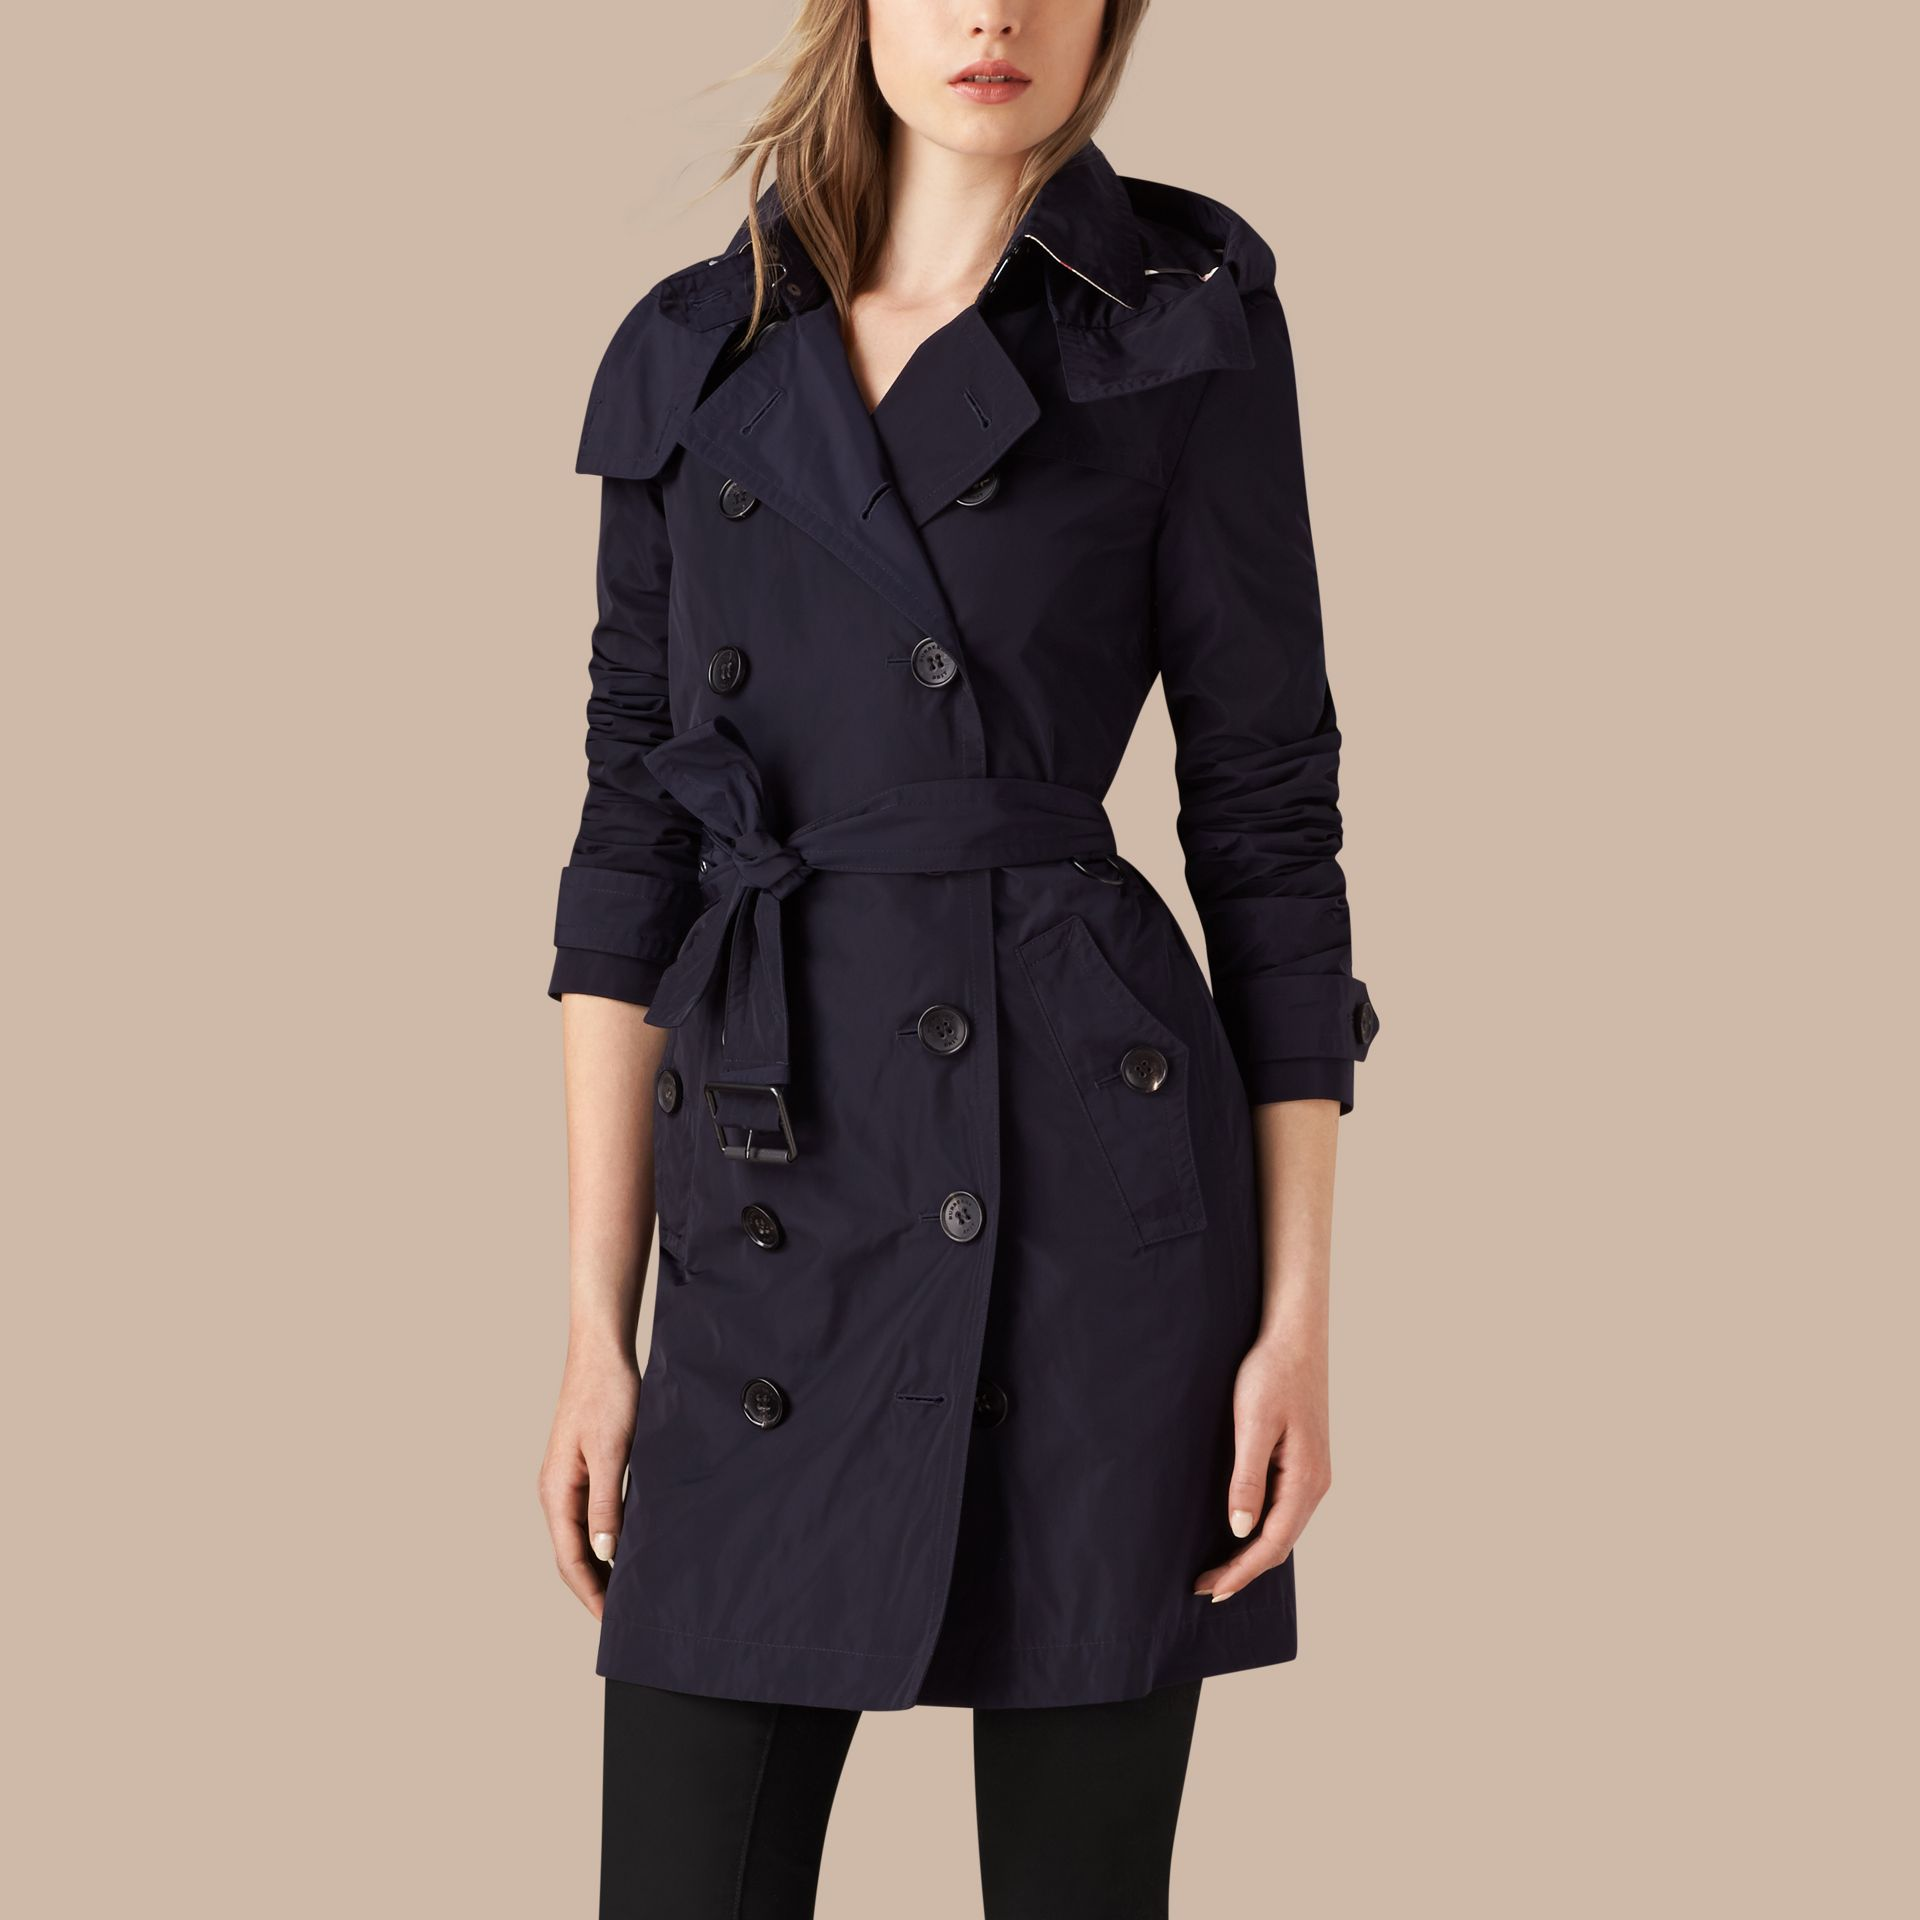 Navy Taffeta Trench Coat with Detachable Hood Navy - gallery image 4